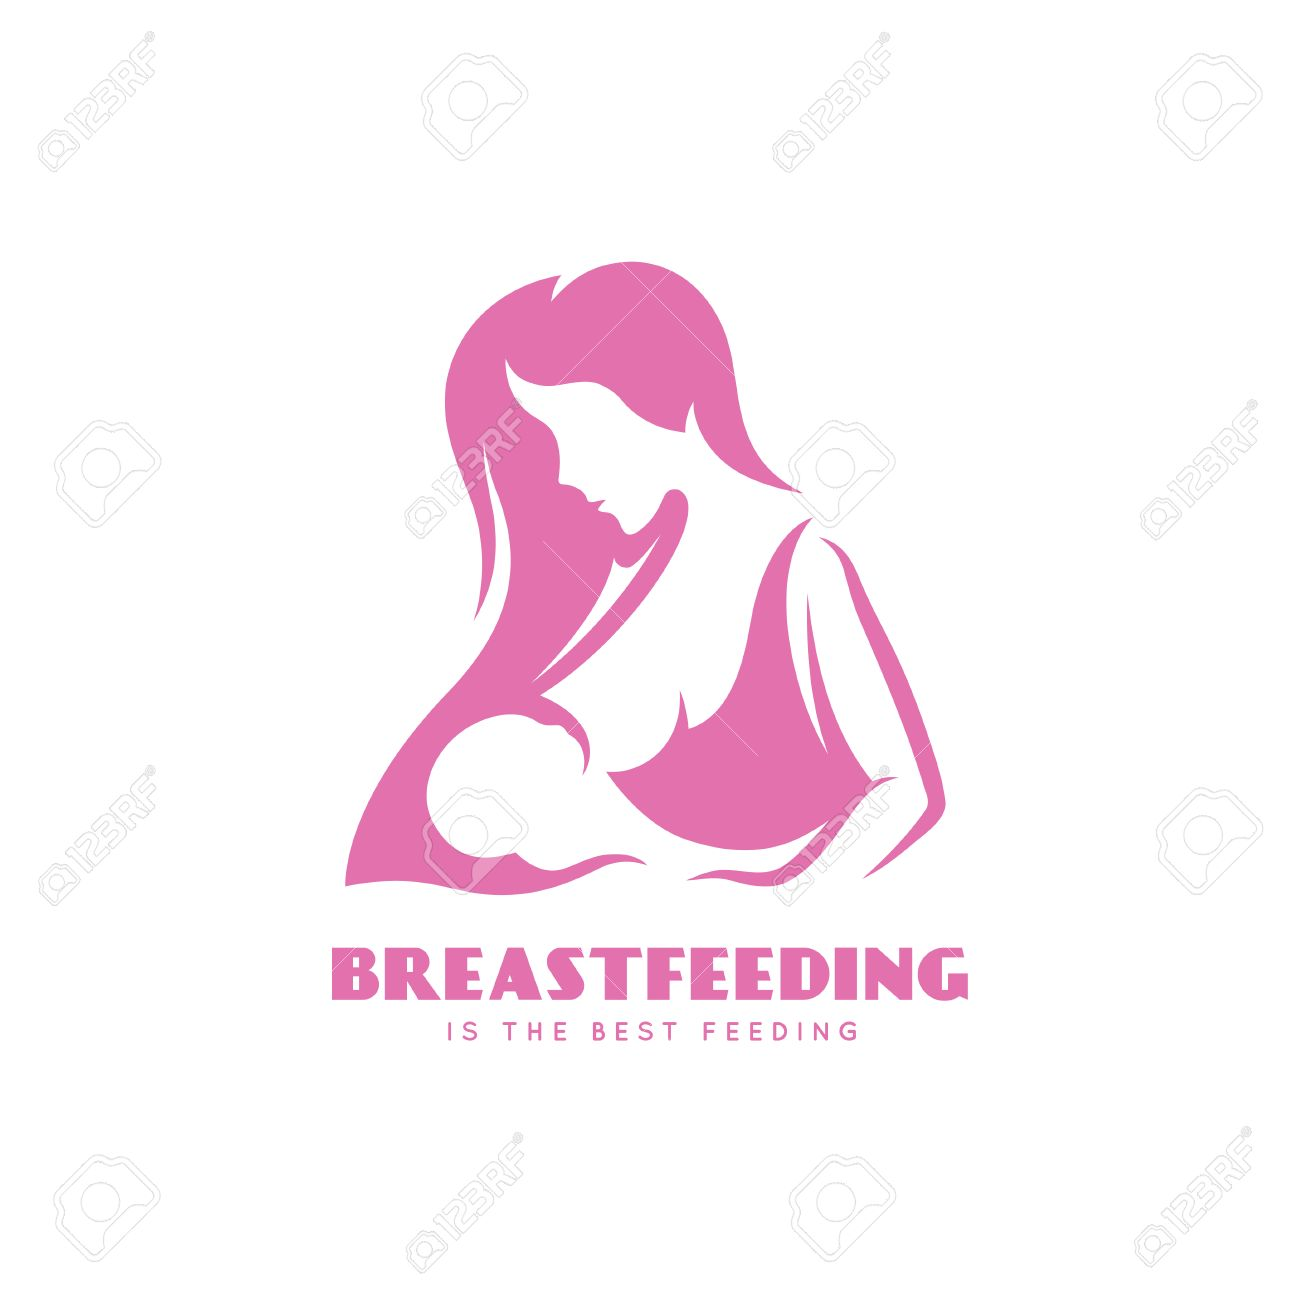 Breastfeeding is the best feedign minimalistic style poster. Breast feeding mother with a child. Vector vintage illustration. - 64411707